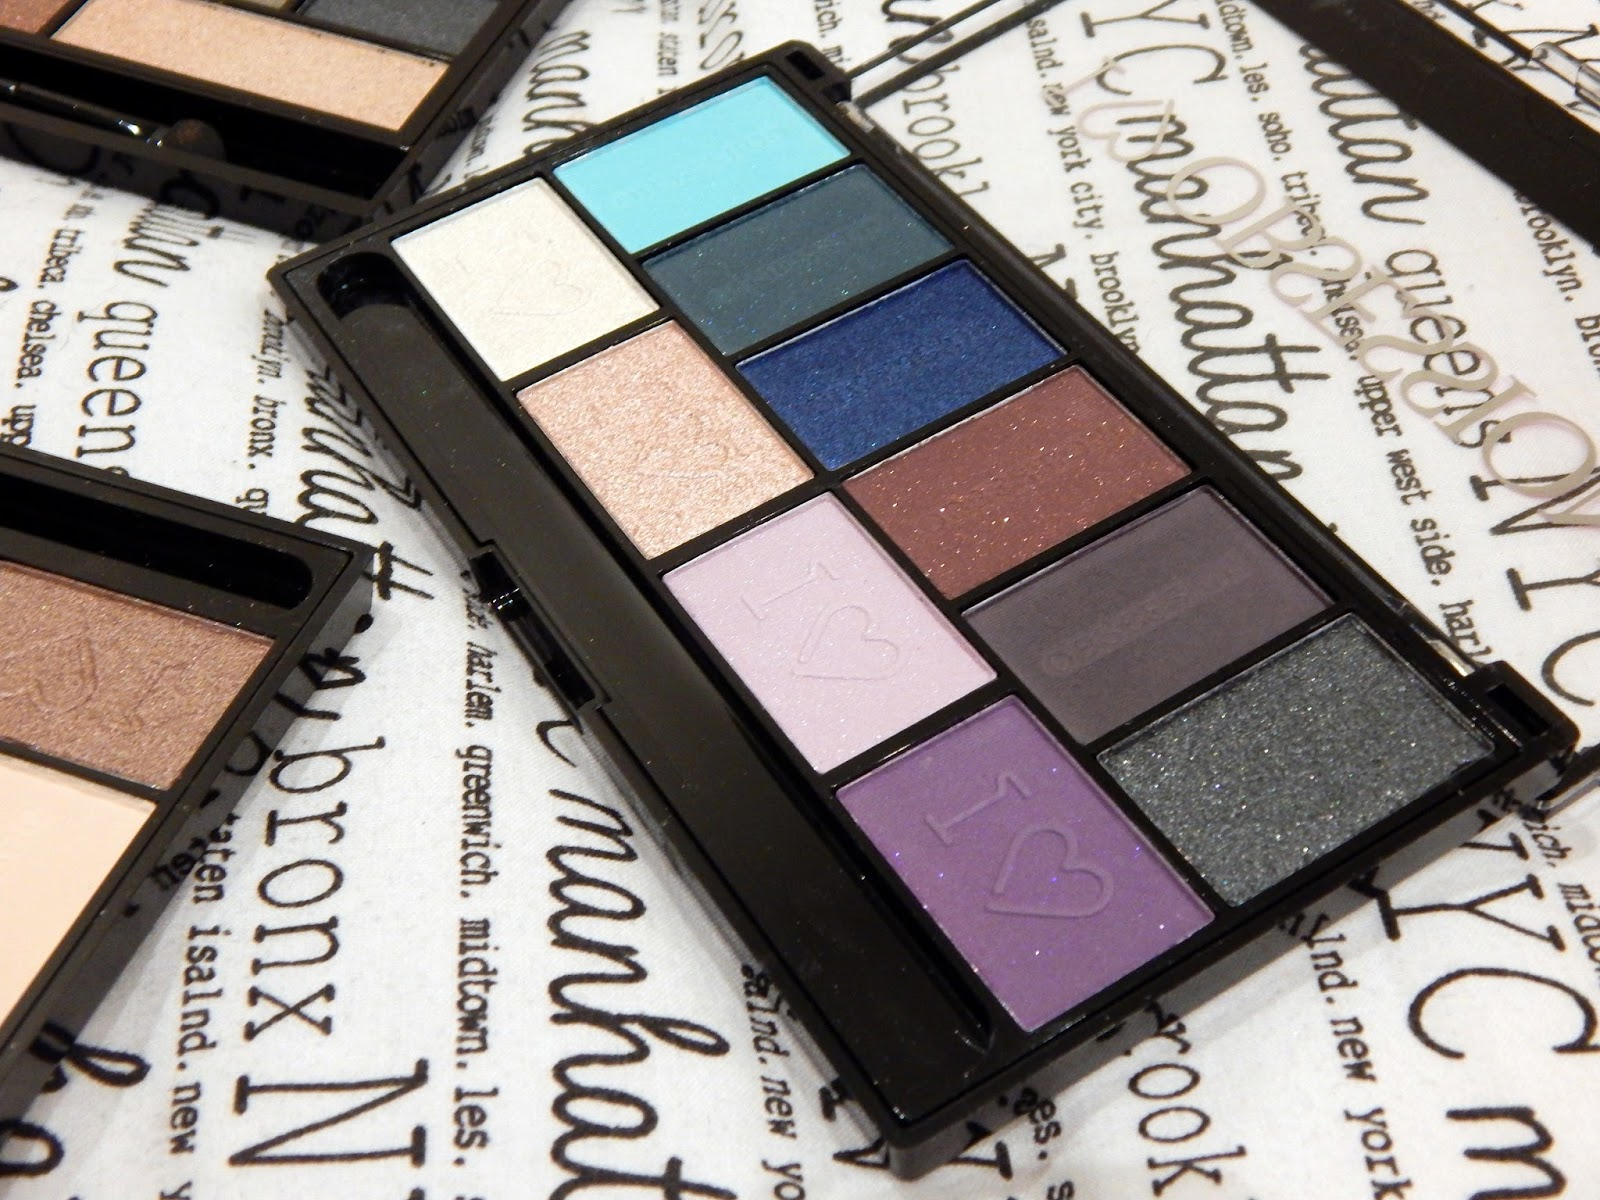 I Heart Makeup I Heart Obsession palette -Wild is the wind - £3.99